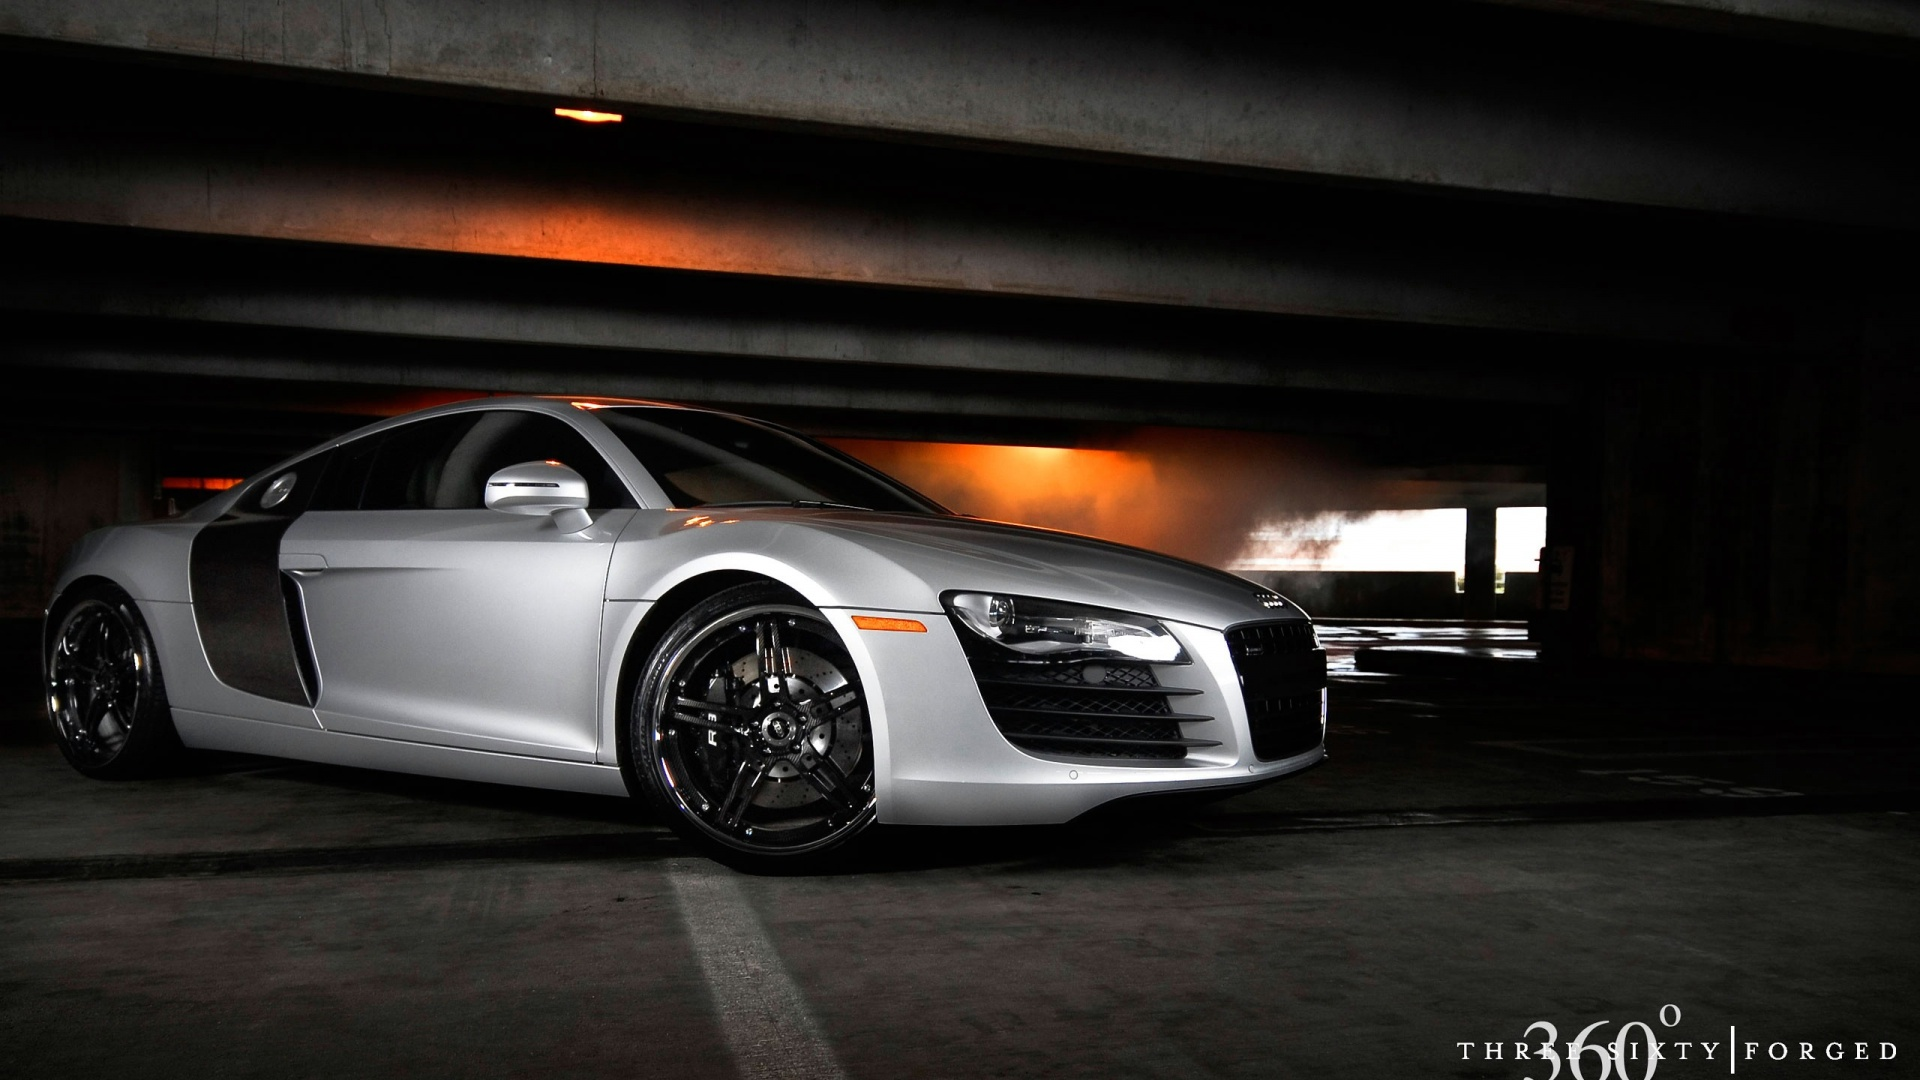 1920x1080 Audi R8 Rozar desktop PC and Mac wallpaper 1920x1080